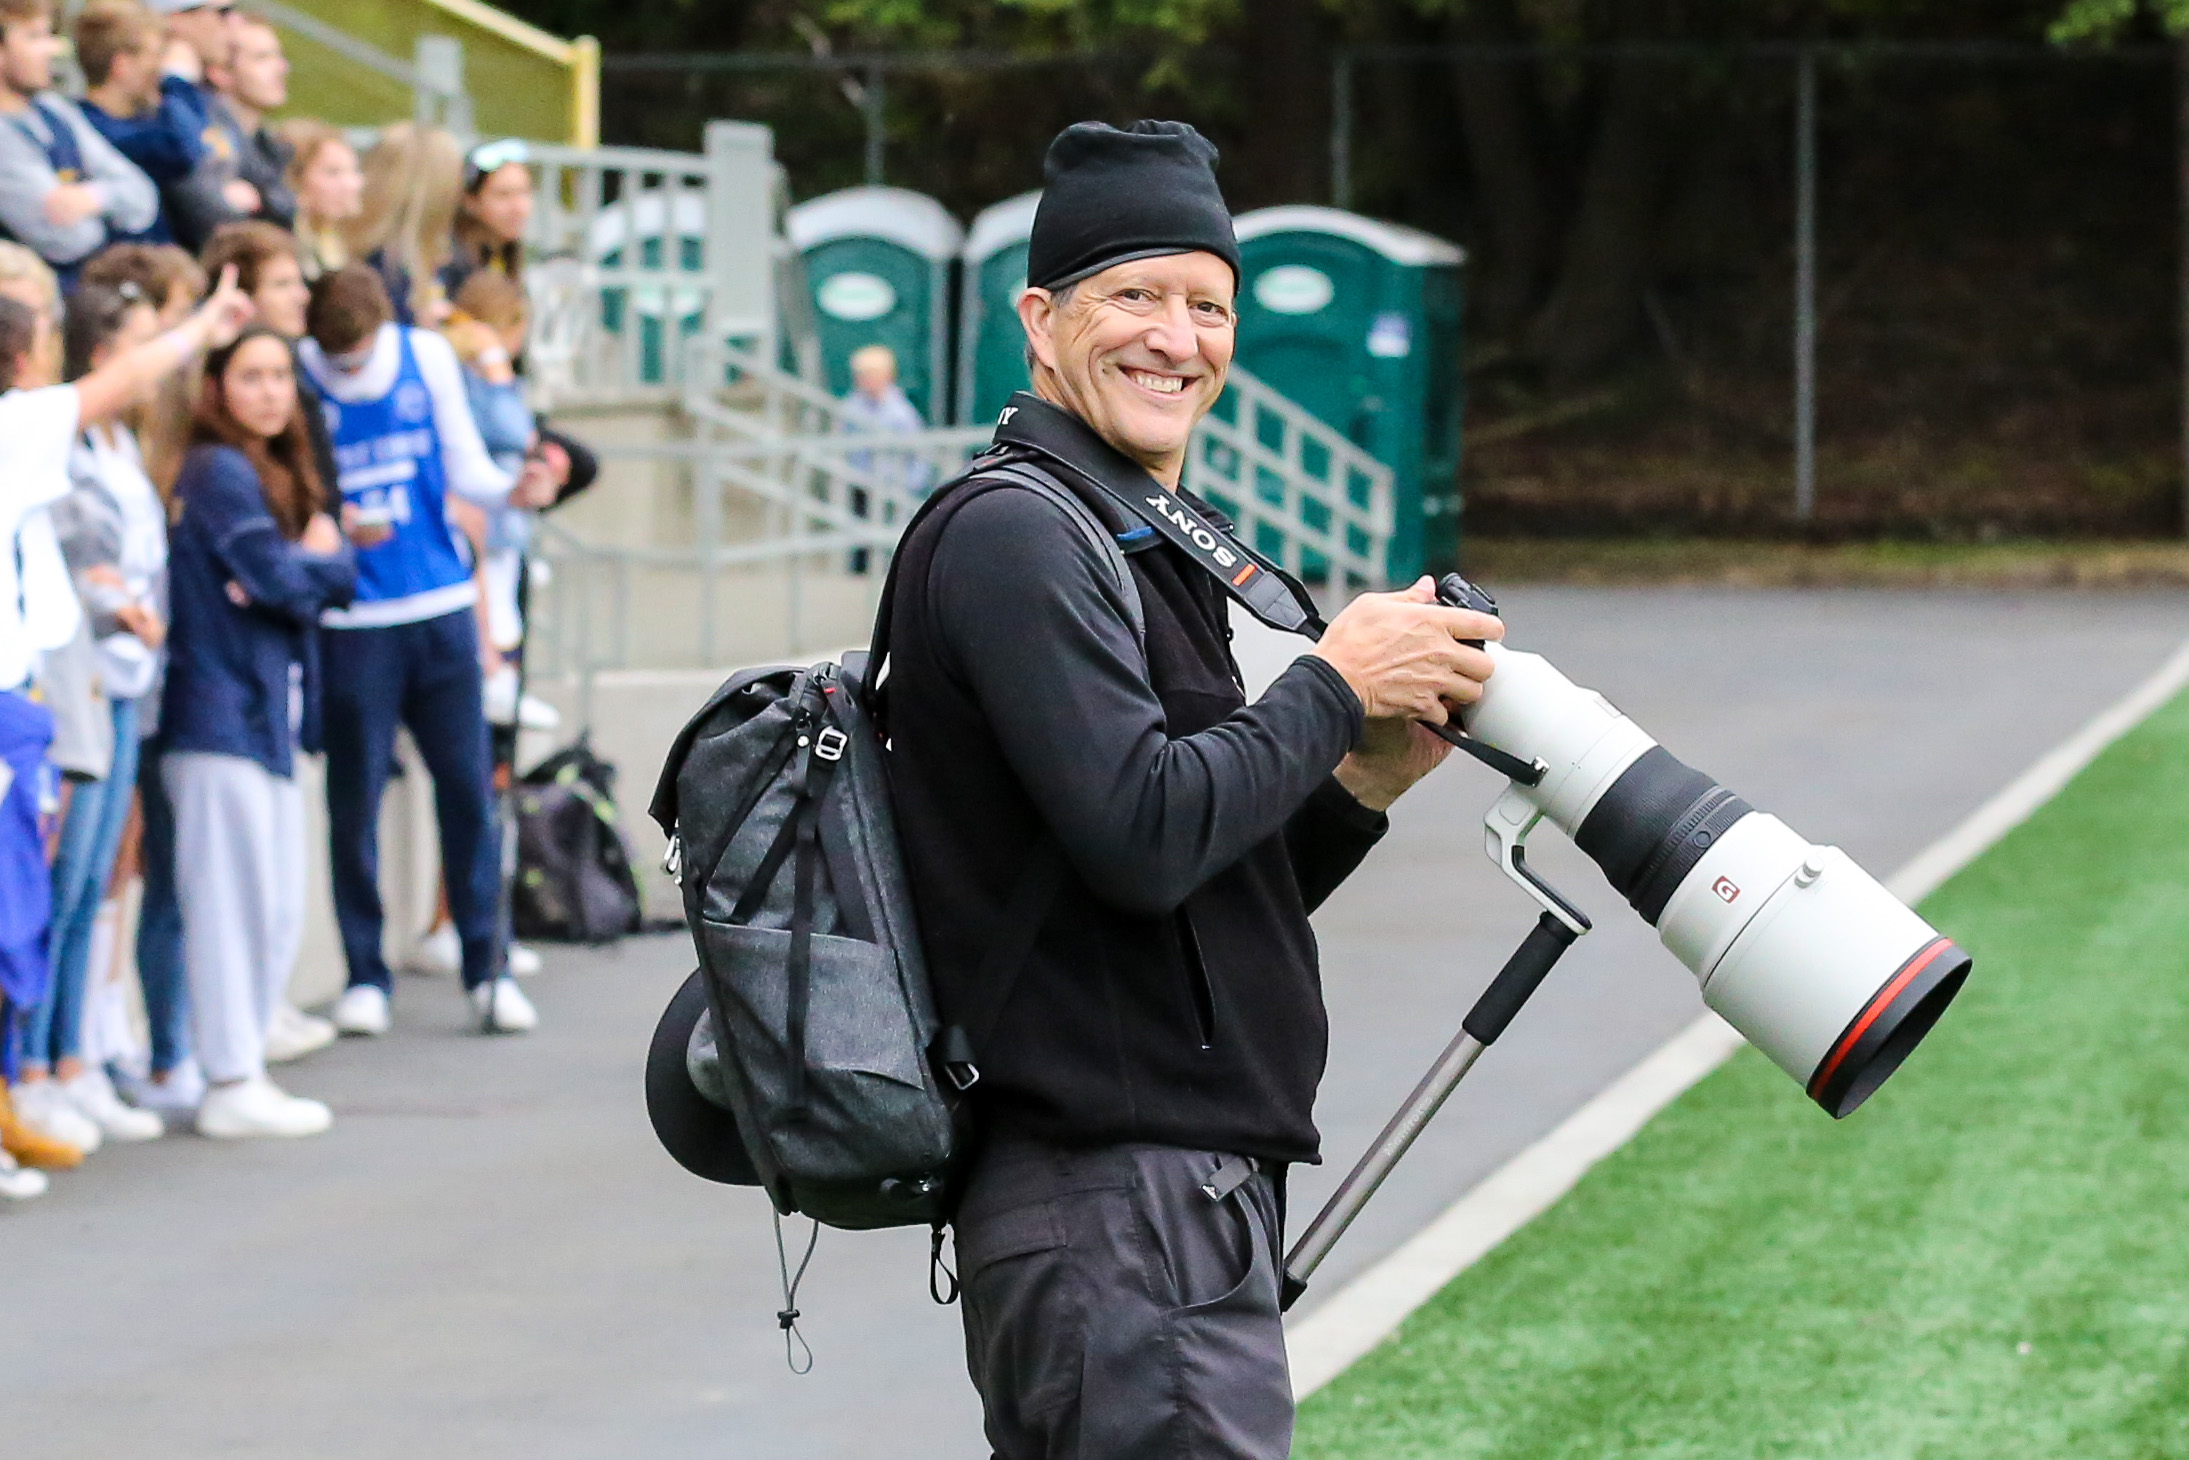 """Sony 400mm f/2.8. Also a plug for the Peak Design """"Everyday"""" 20L pack. Ignore honey buckets in the background. Photo courtesy Rick Edelman."""